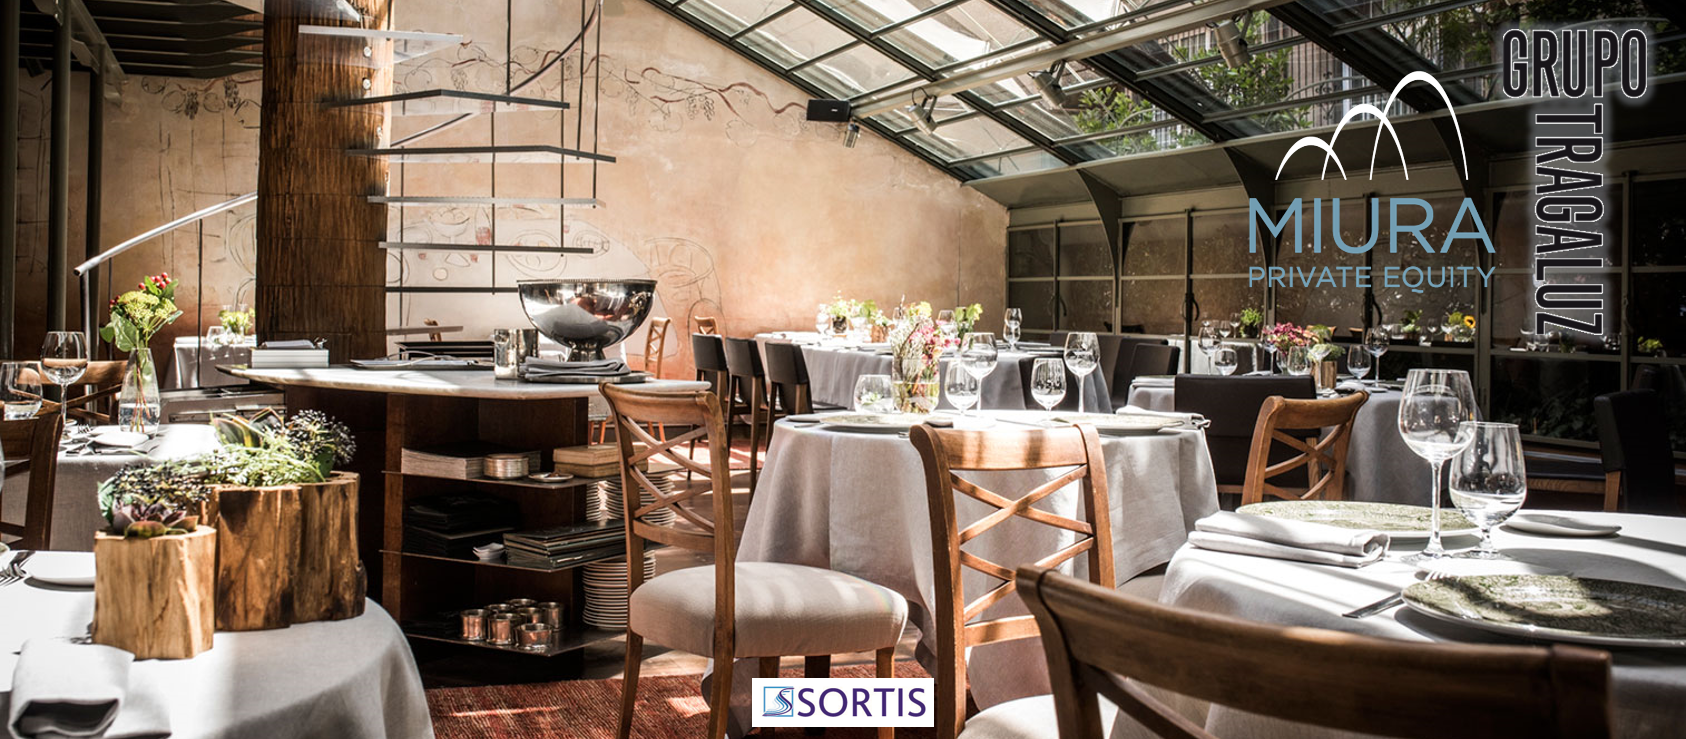 Spanish Group of Restaurants Tragaluz Sells its Majority Stake to Miura Private Equity